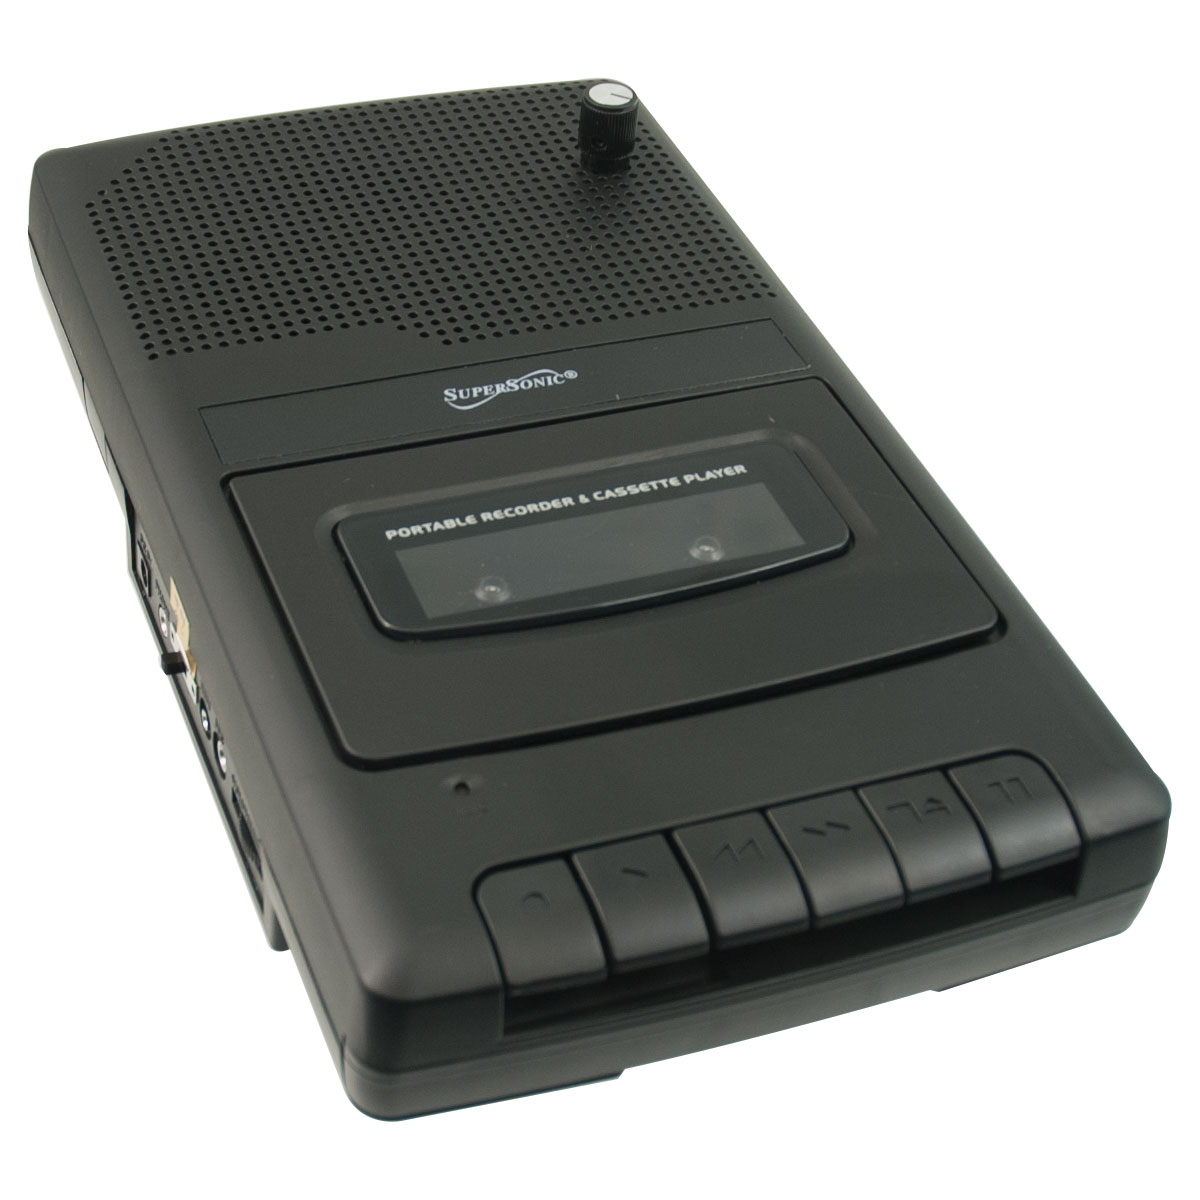 Eurobox Nextgen Portable 43 32 Tape Recorders Electronics Tbook